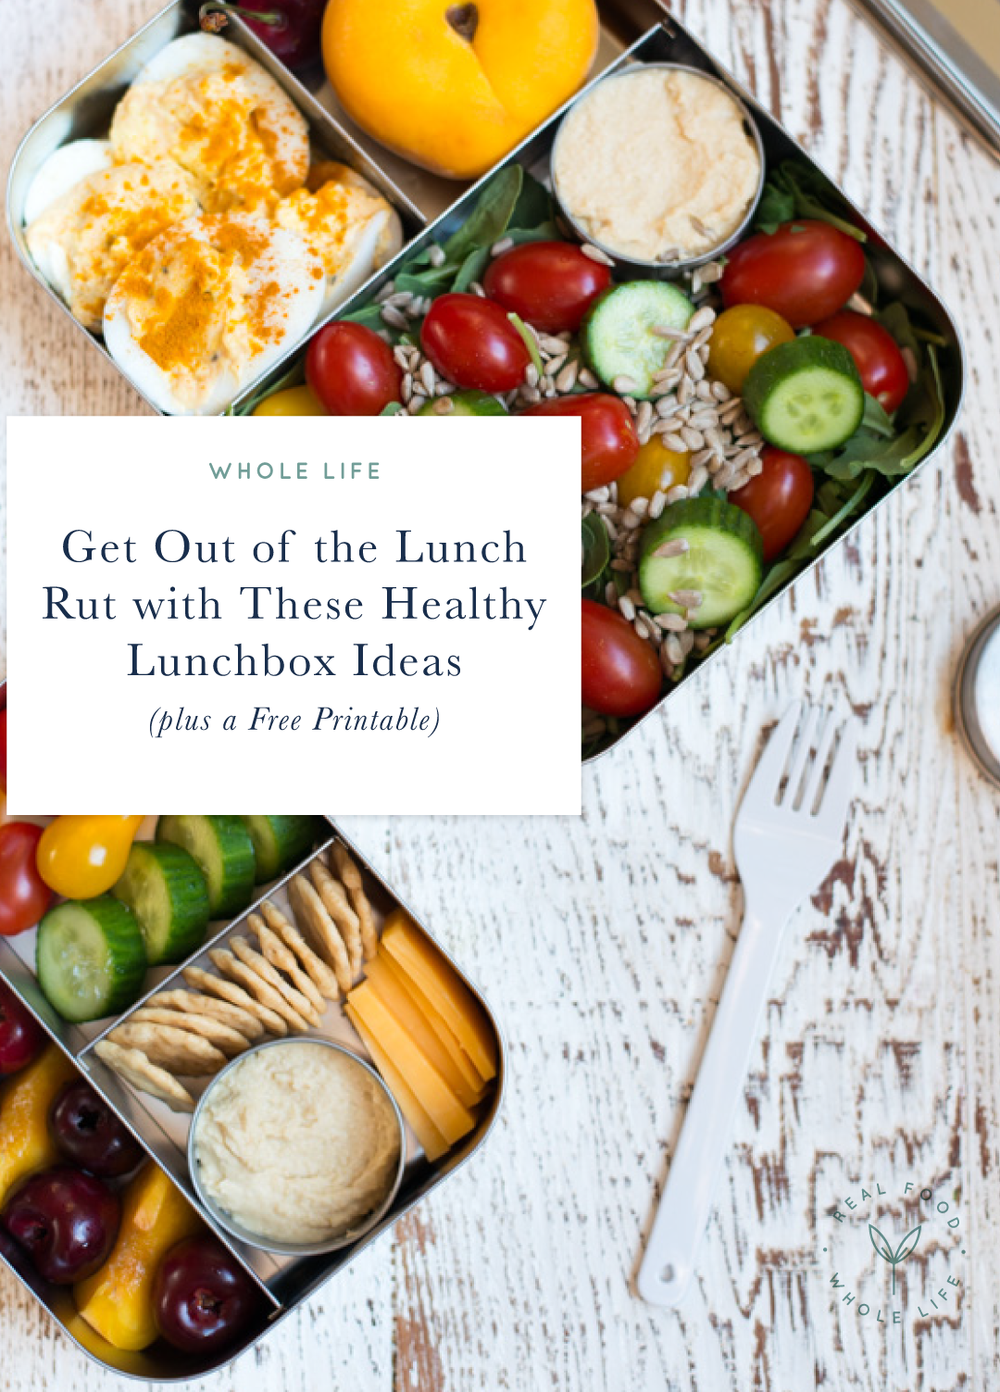 Get Out of the Lunch Rut with These Healthy Lunchbox Ideas (plus a Free Printable)